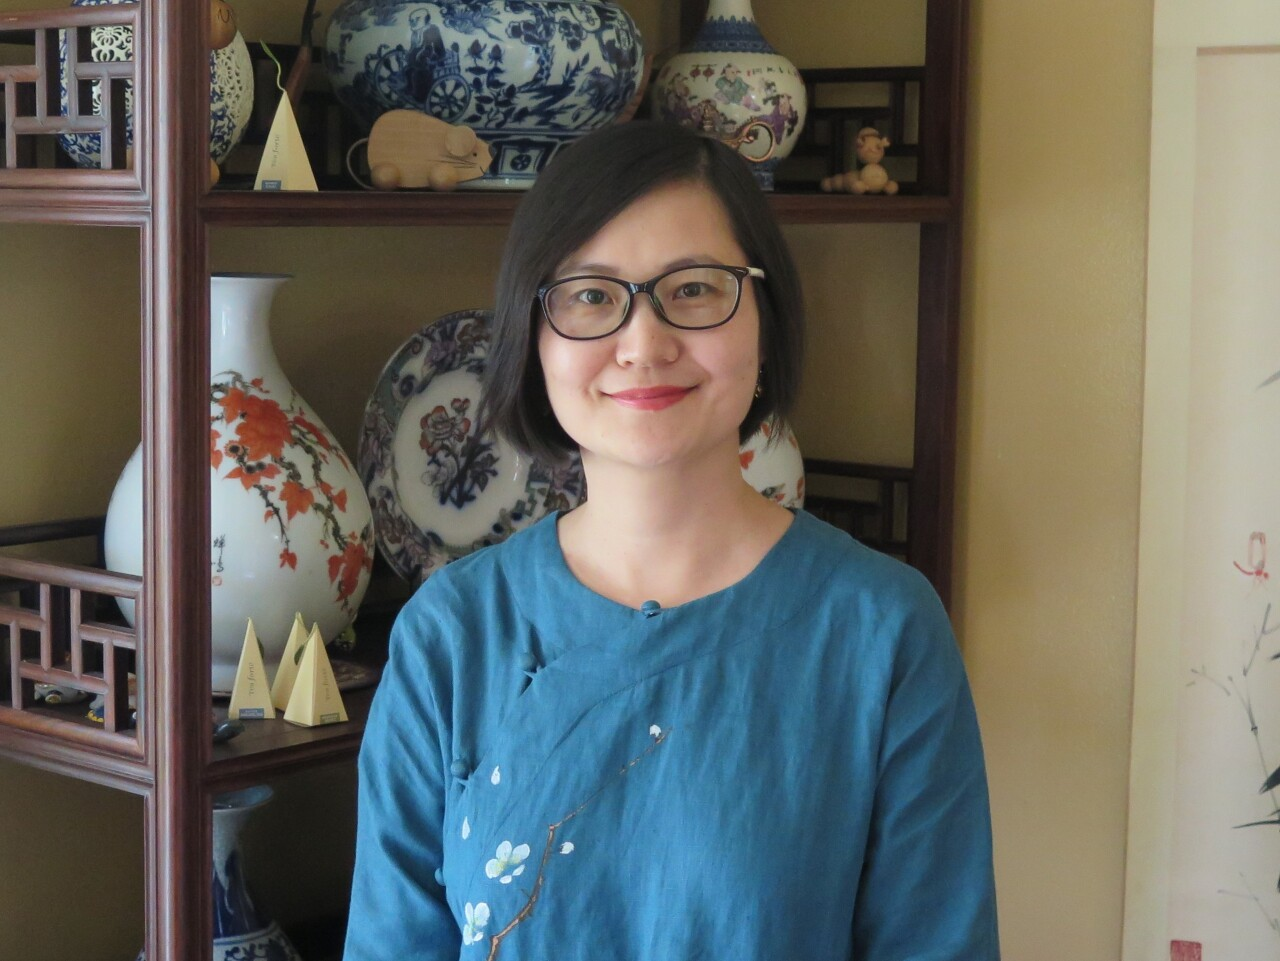 Felicity Tao is smiling in this photo. She has black, chin-length hair and is wearing glasses and a blue, embroidered top.